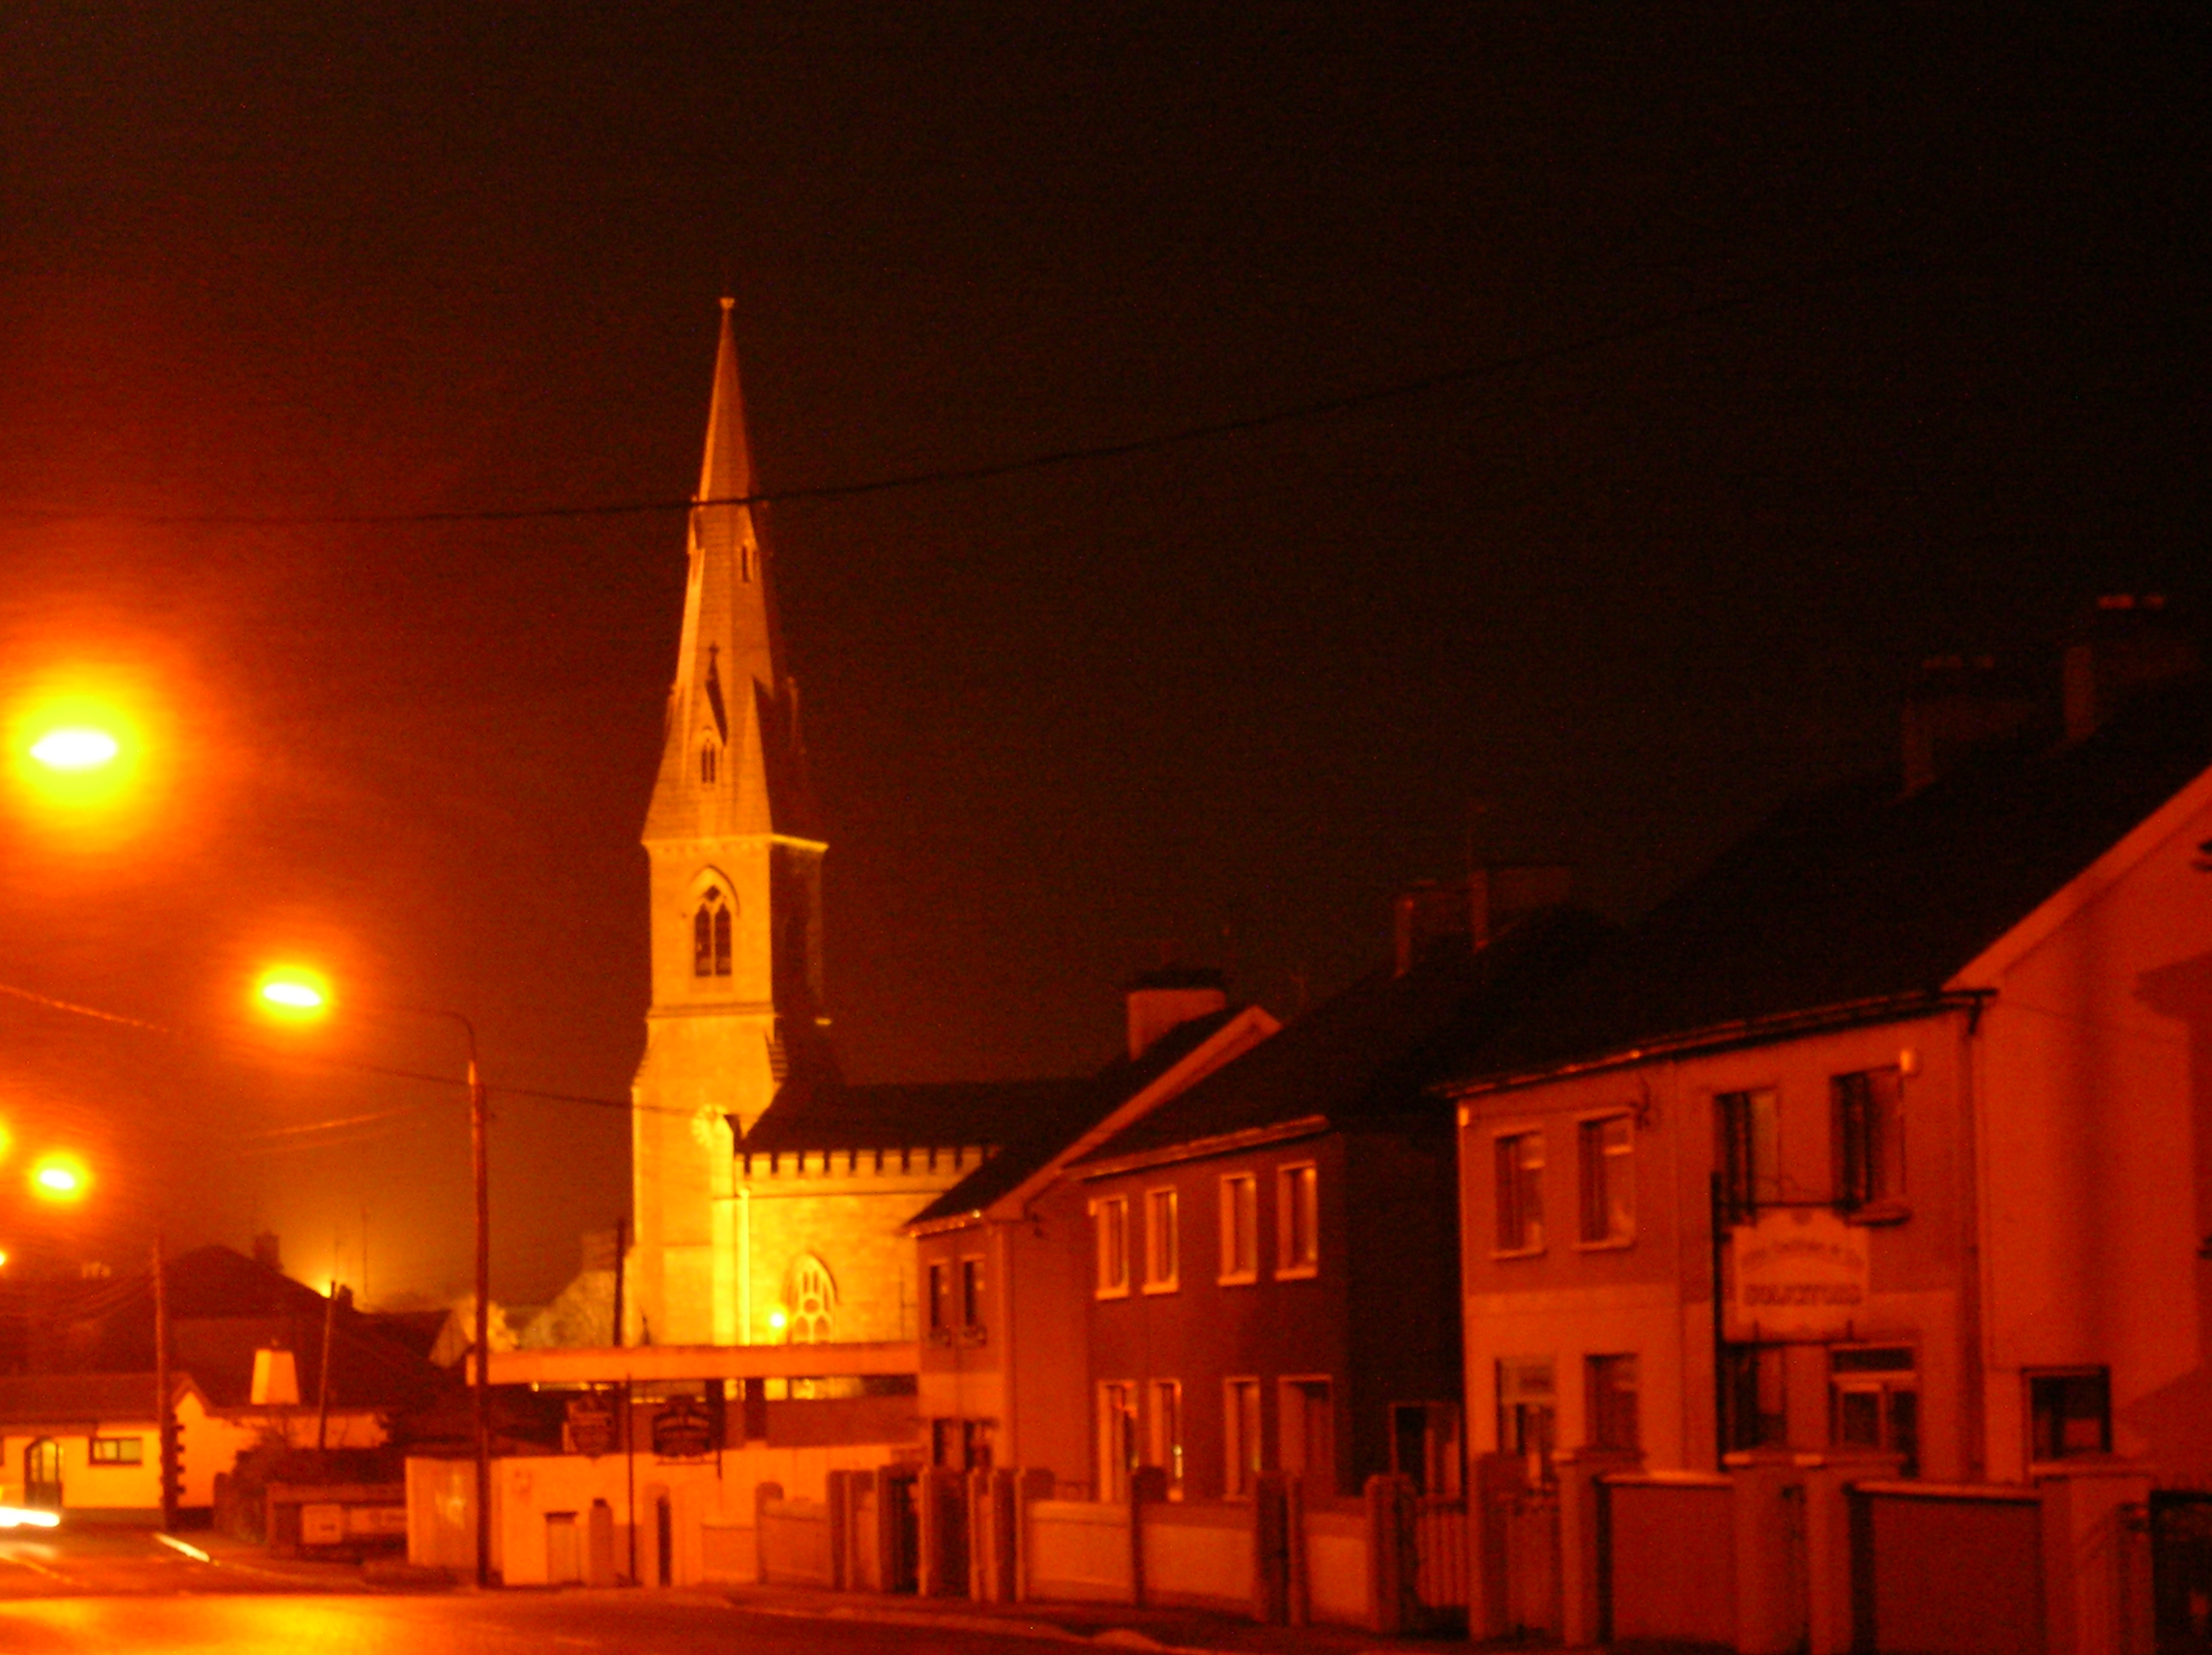 English: Ennis, County Clare, Ireland